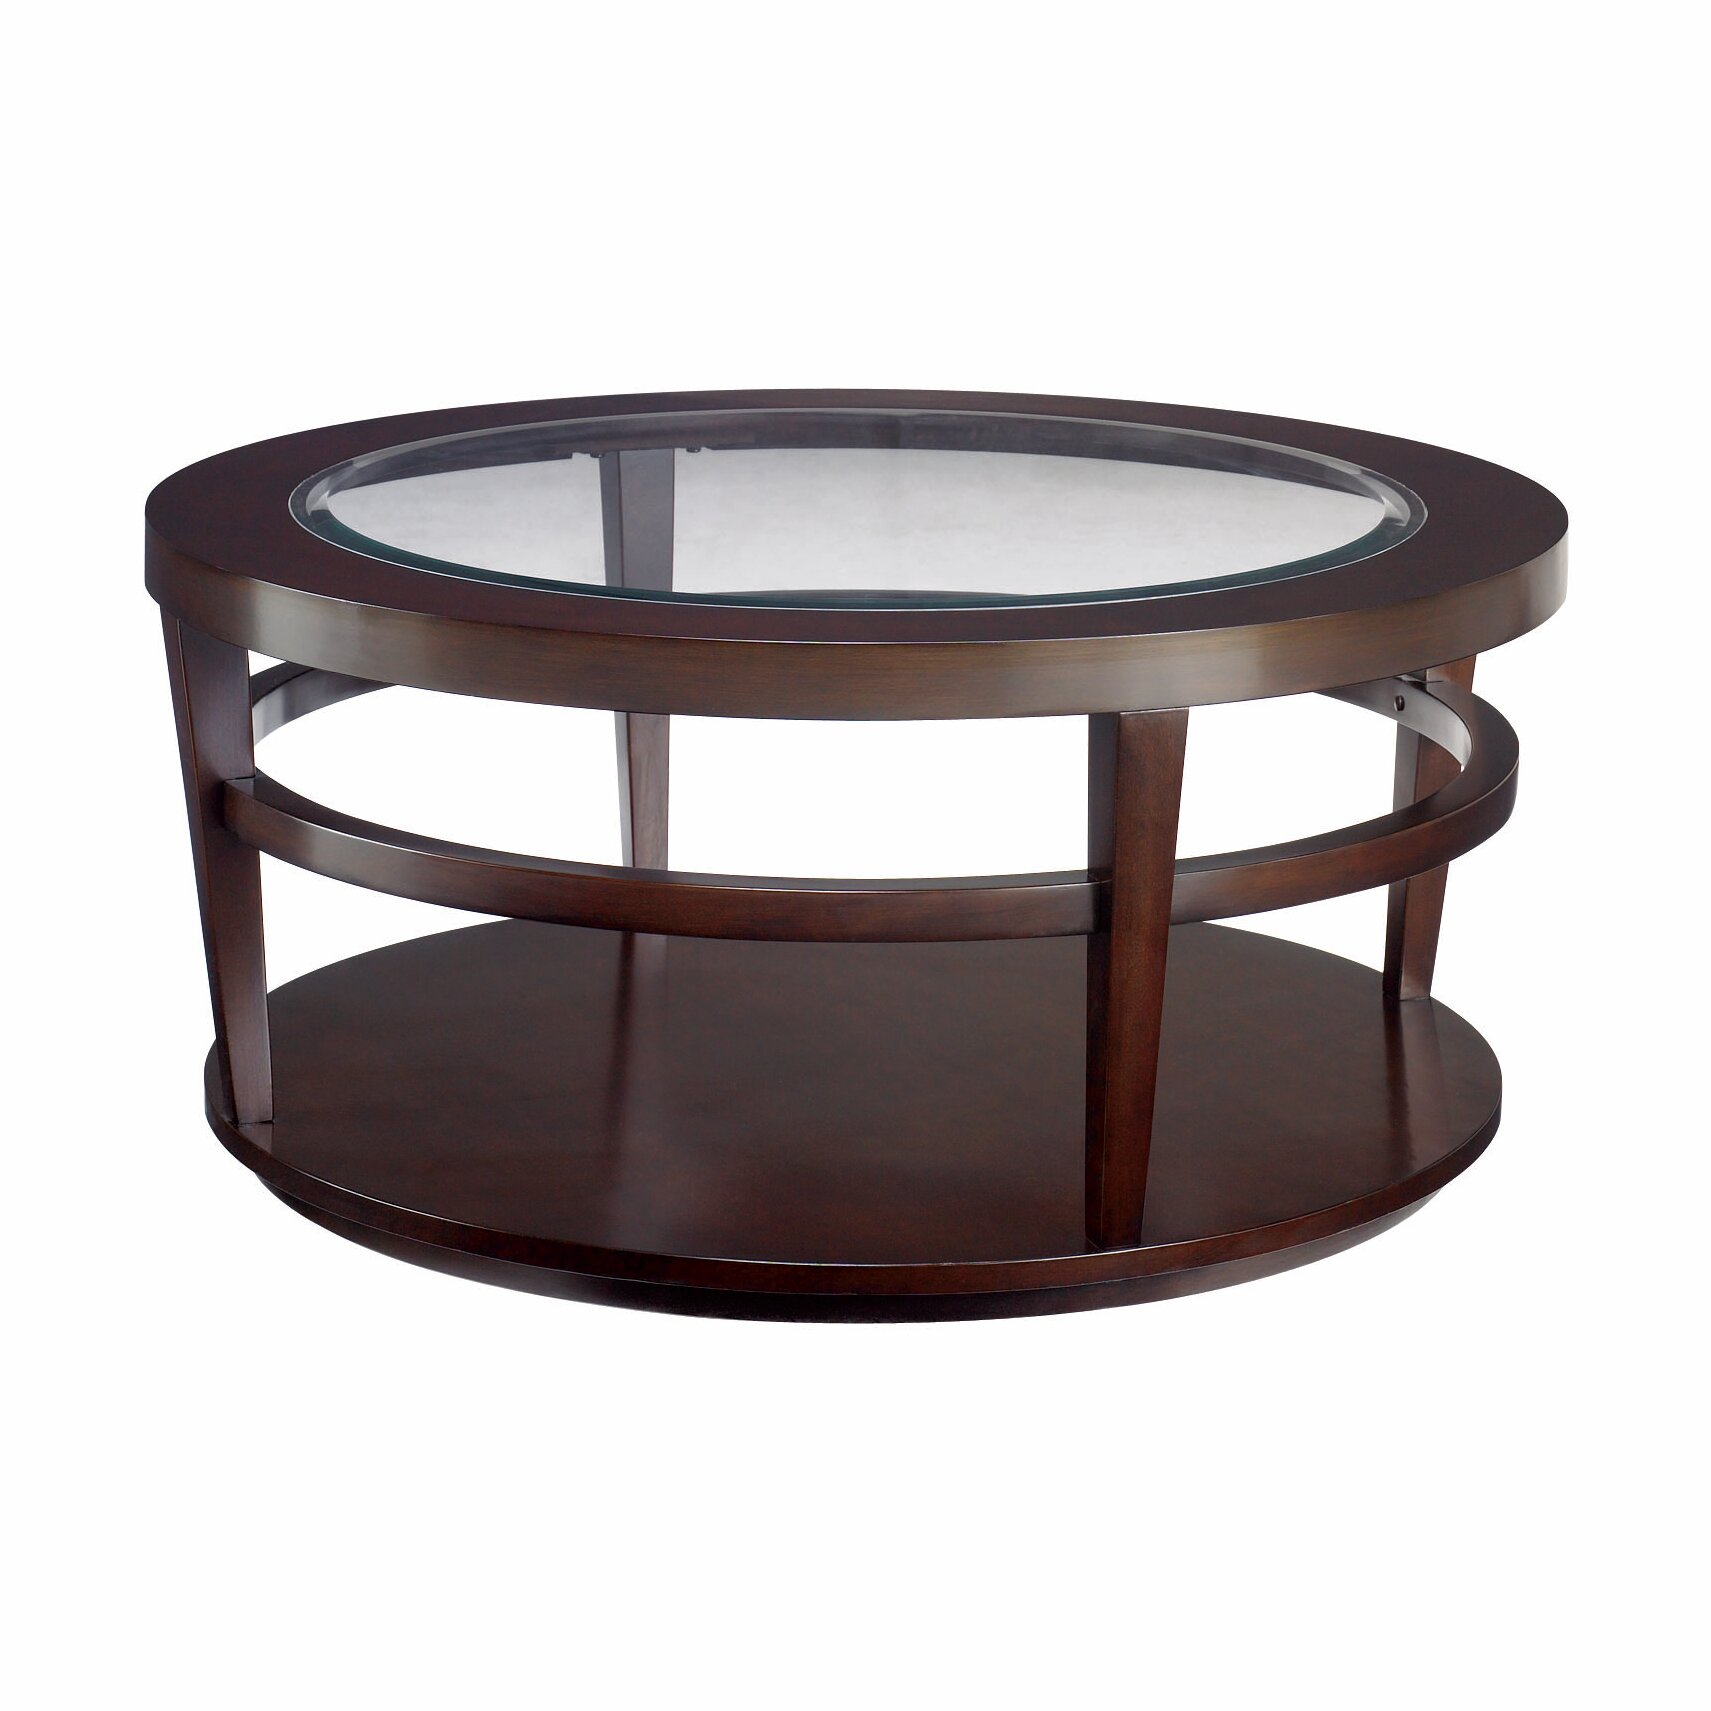 Darby Home Co Bolden Coffee Table Reviews Wayfair